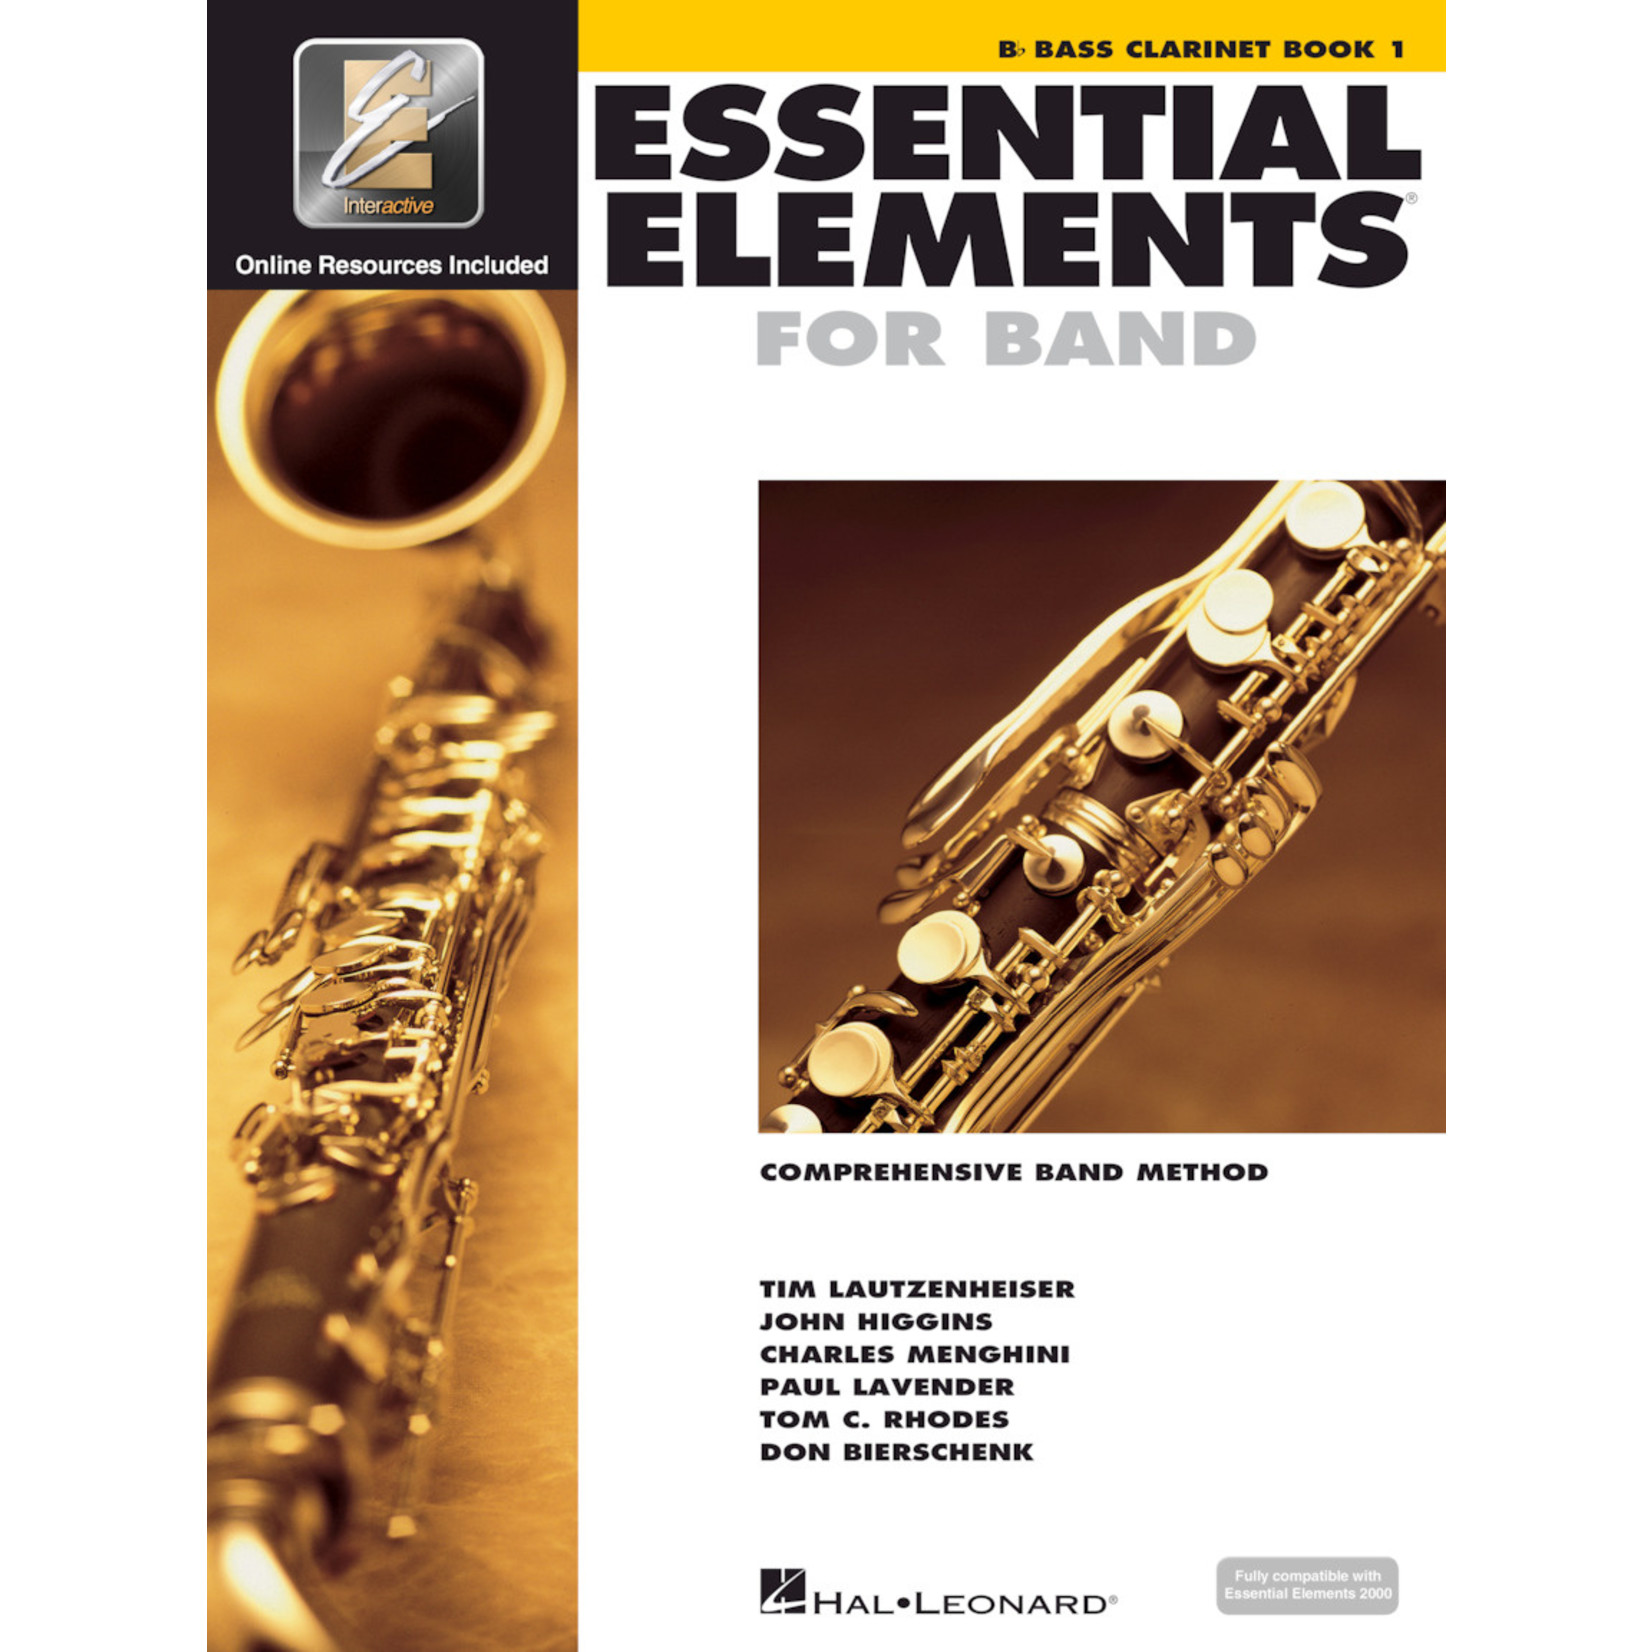 Hal Leonard Essential Elements for Band Bass Clarinet Book 1